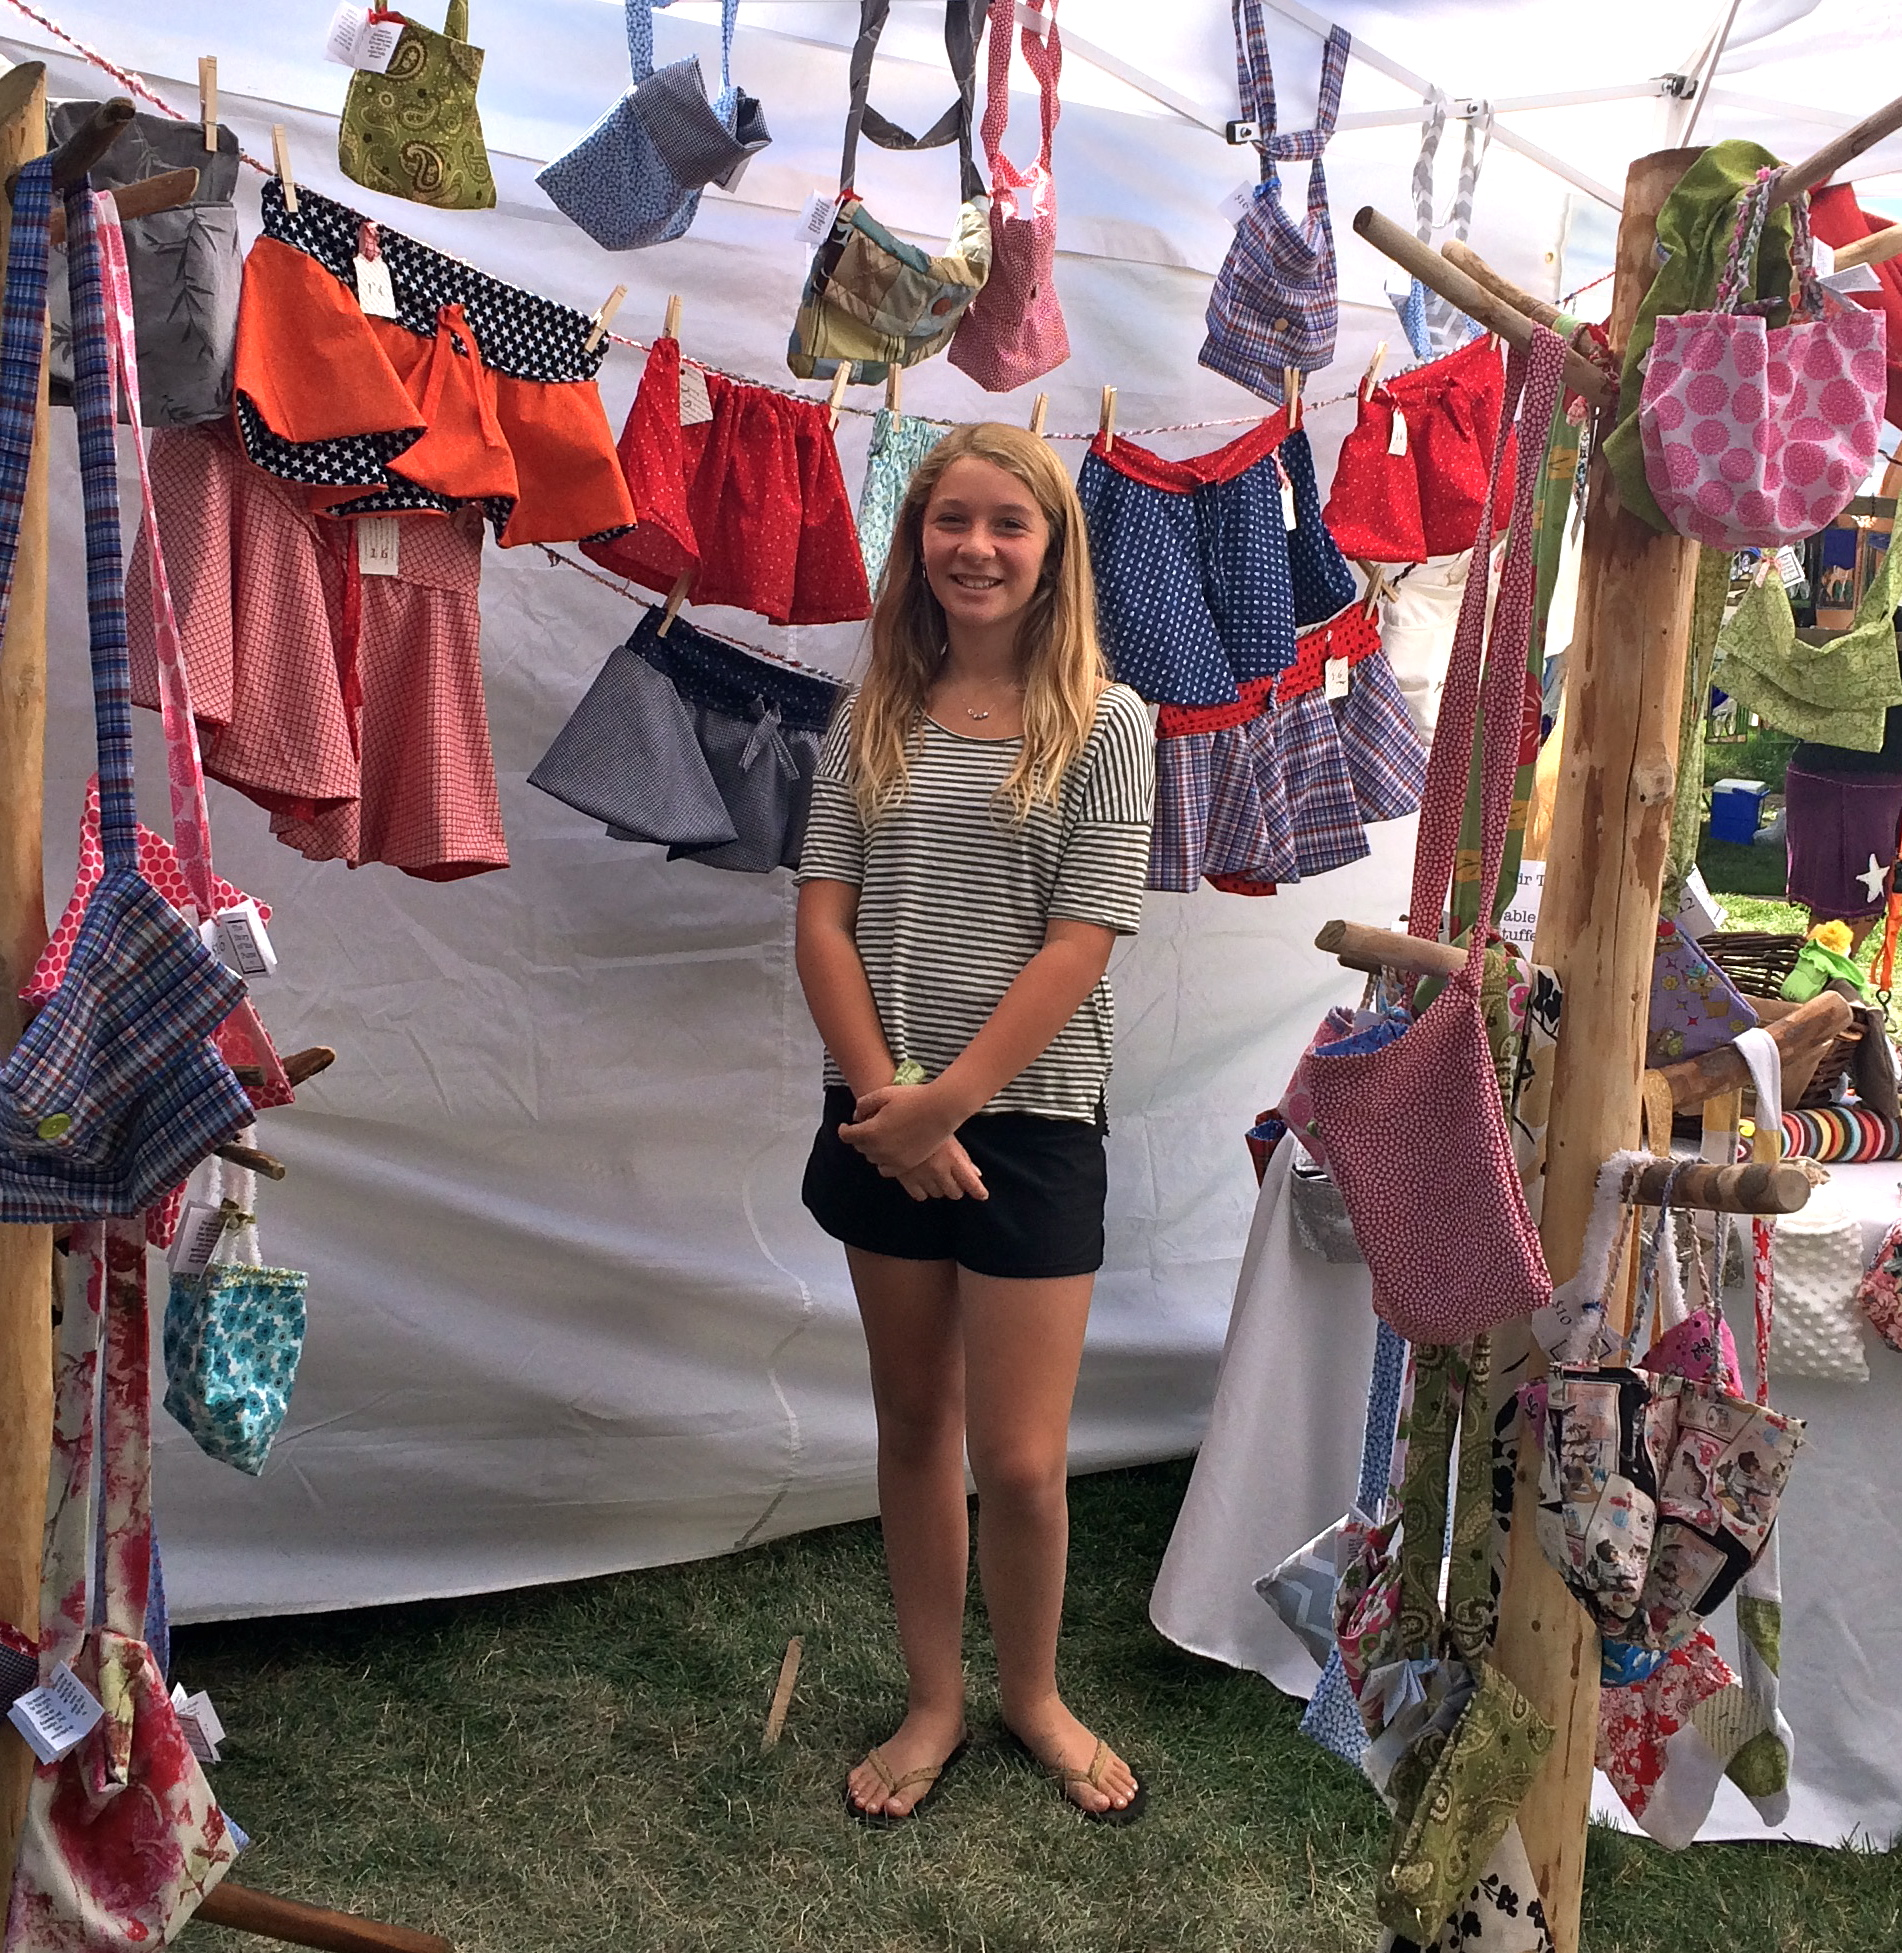 2015 Youth Booth artist Jamie Provost had a fun and successful booth at Art on the Green